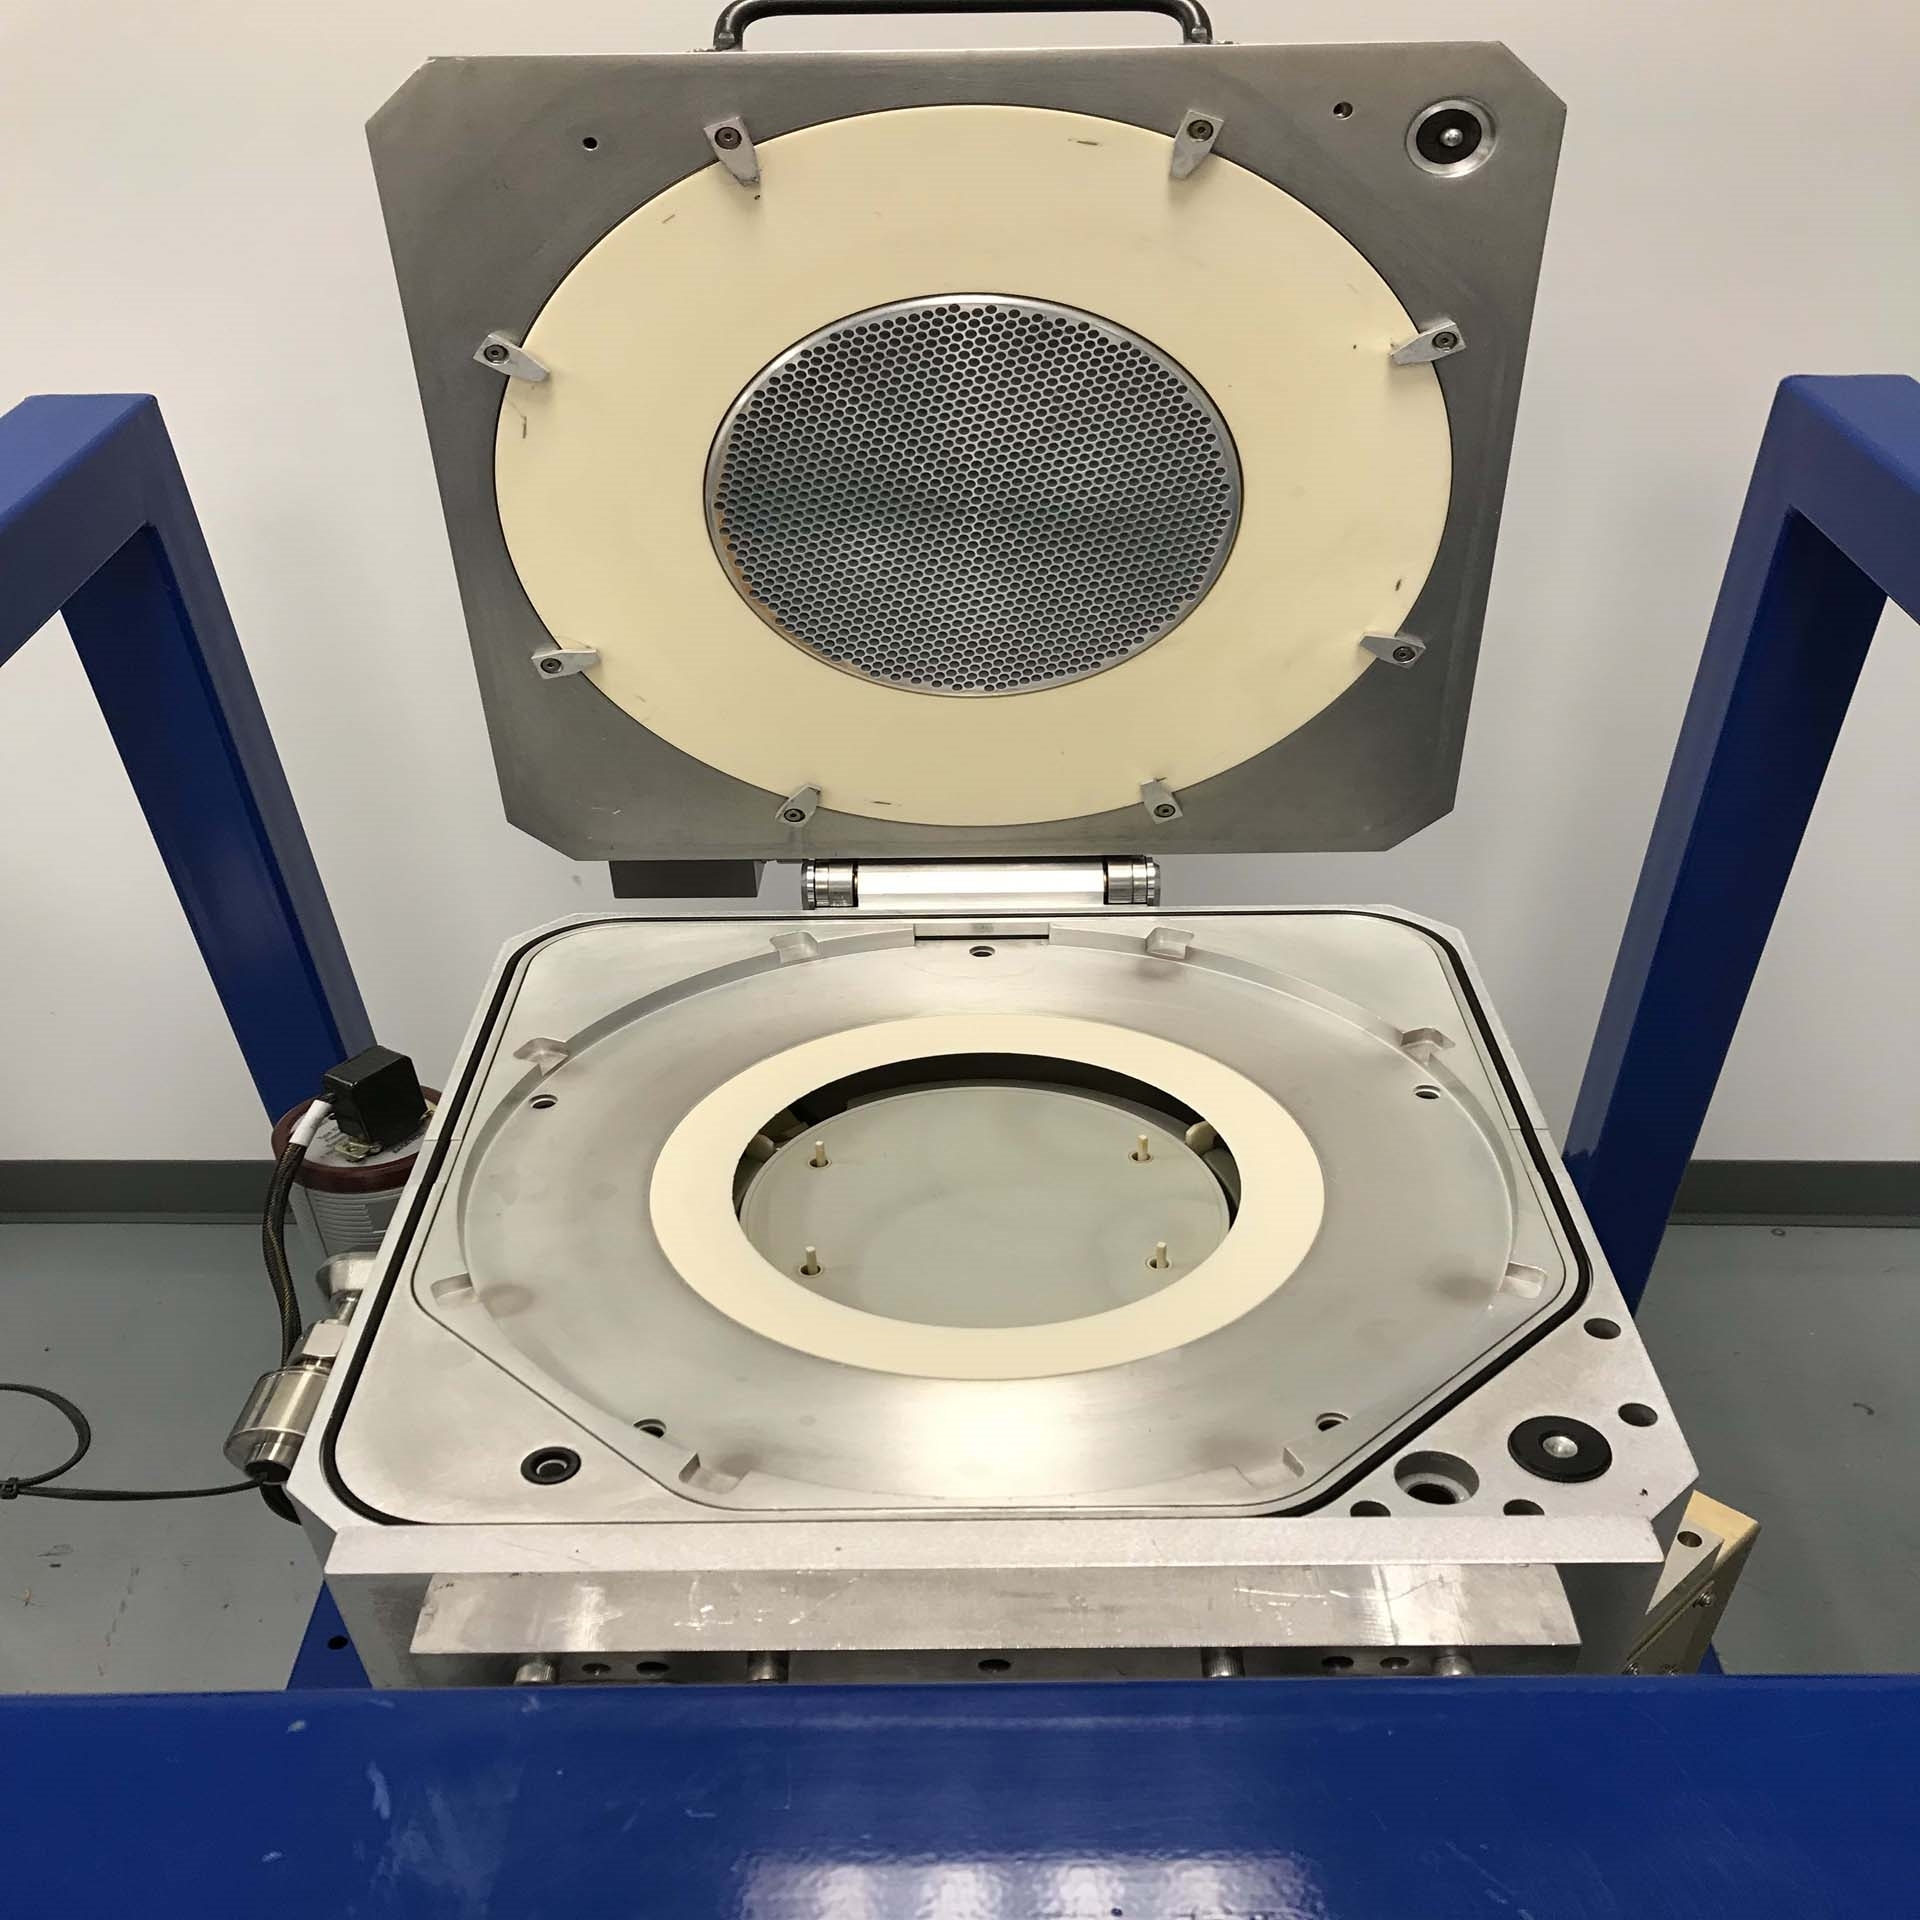 Etl Testing Useful Resources: AMAT / APPLIED MATERIALS SiH4 Chamber For P5000 Parts Used